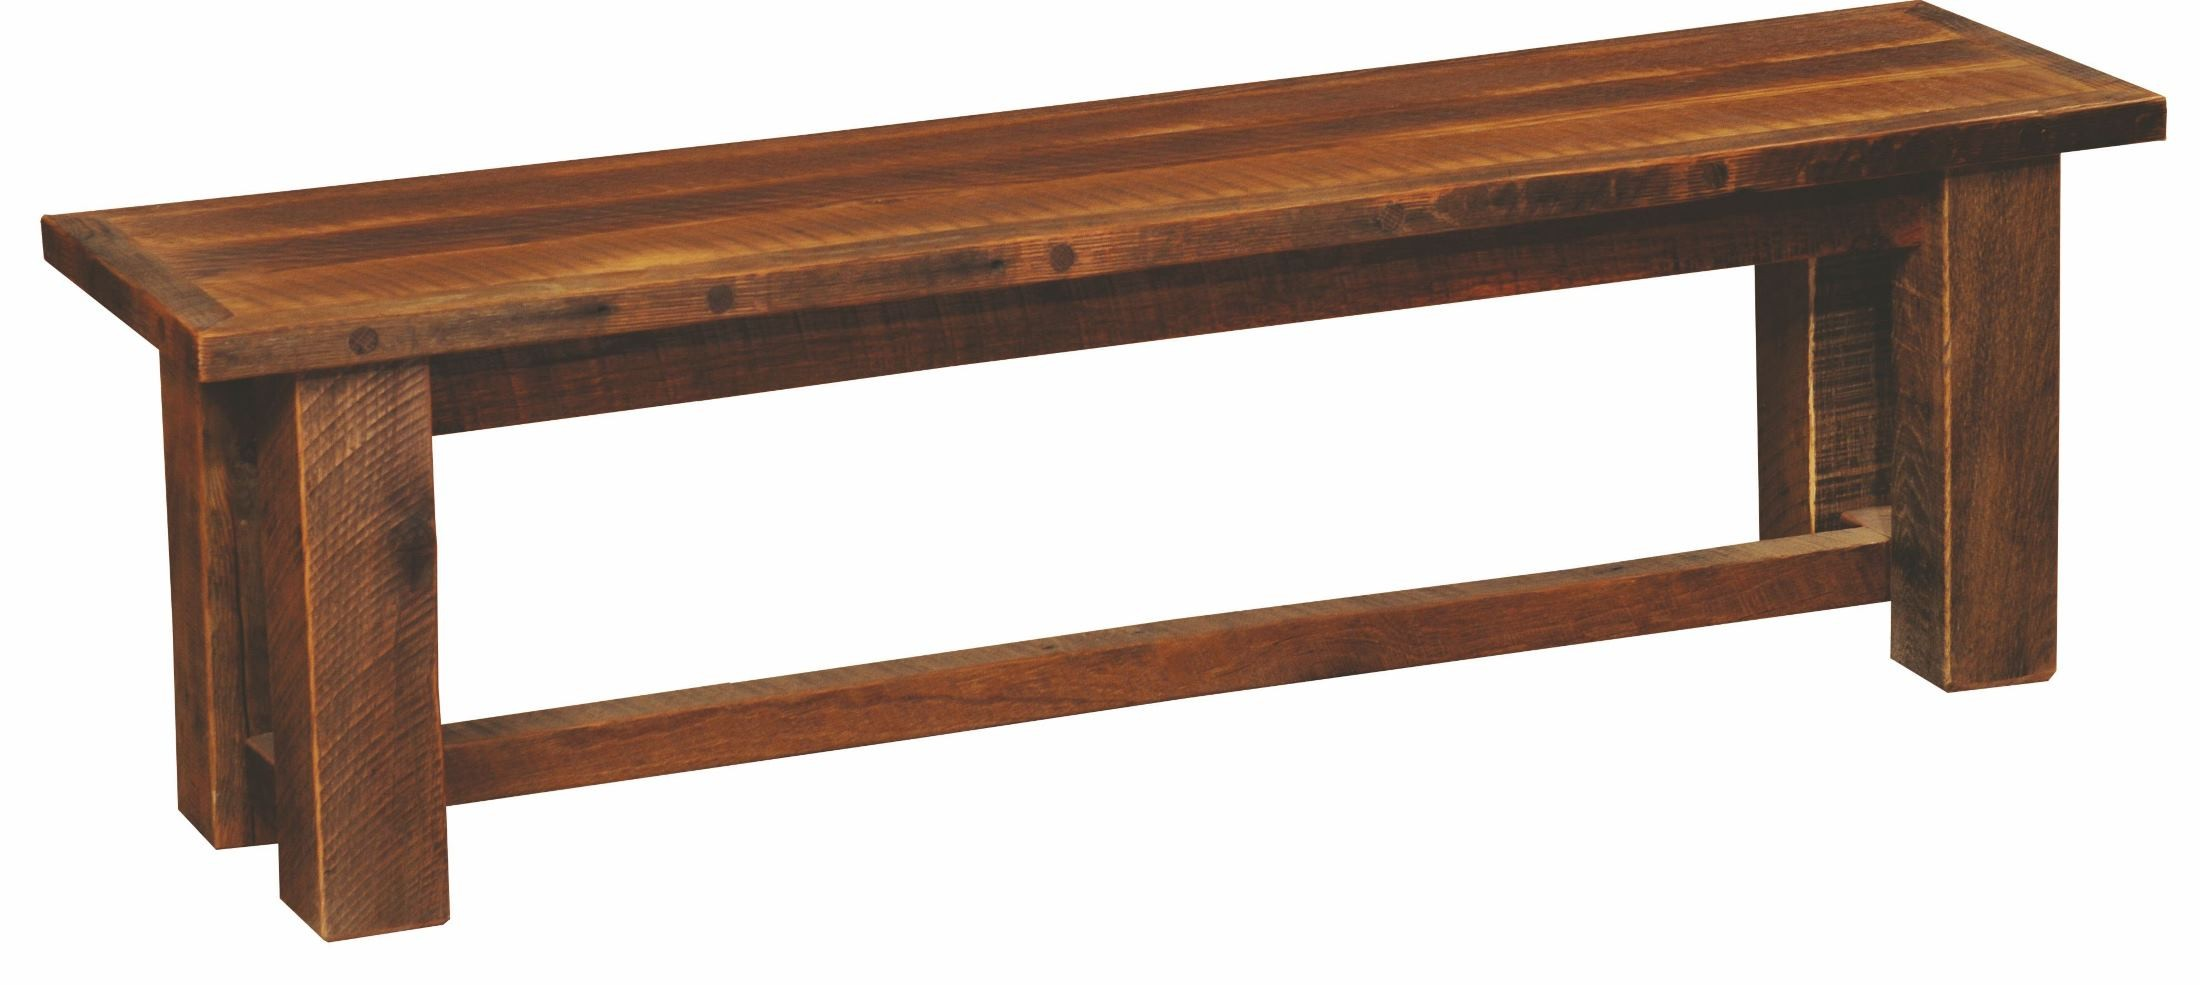 Barnwood 48 antique oak top bench from fireside lodge Oak bench